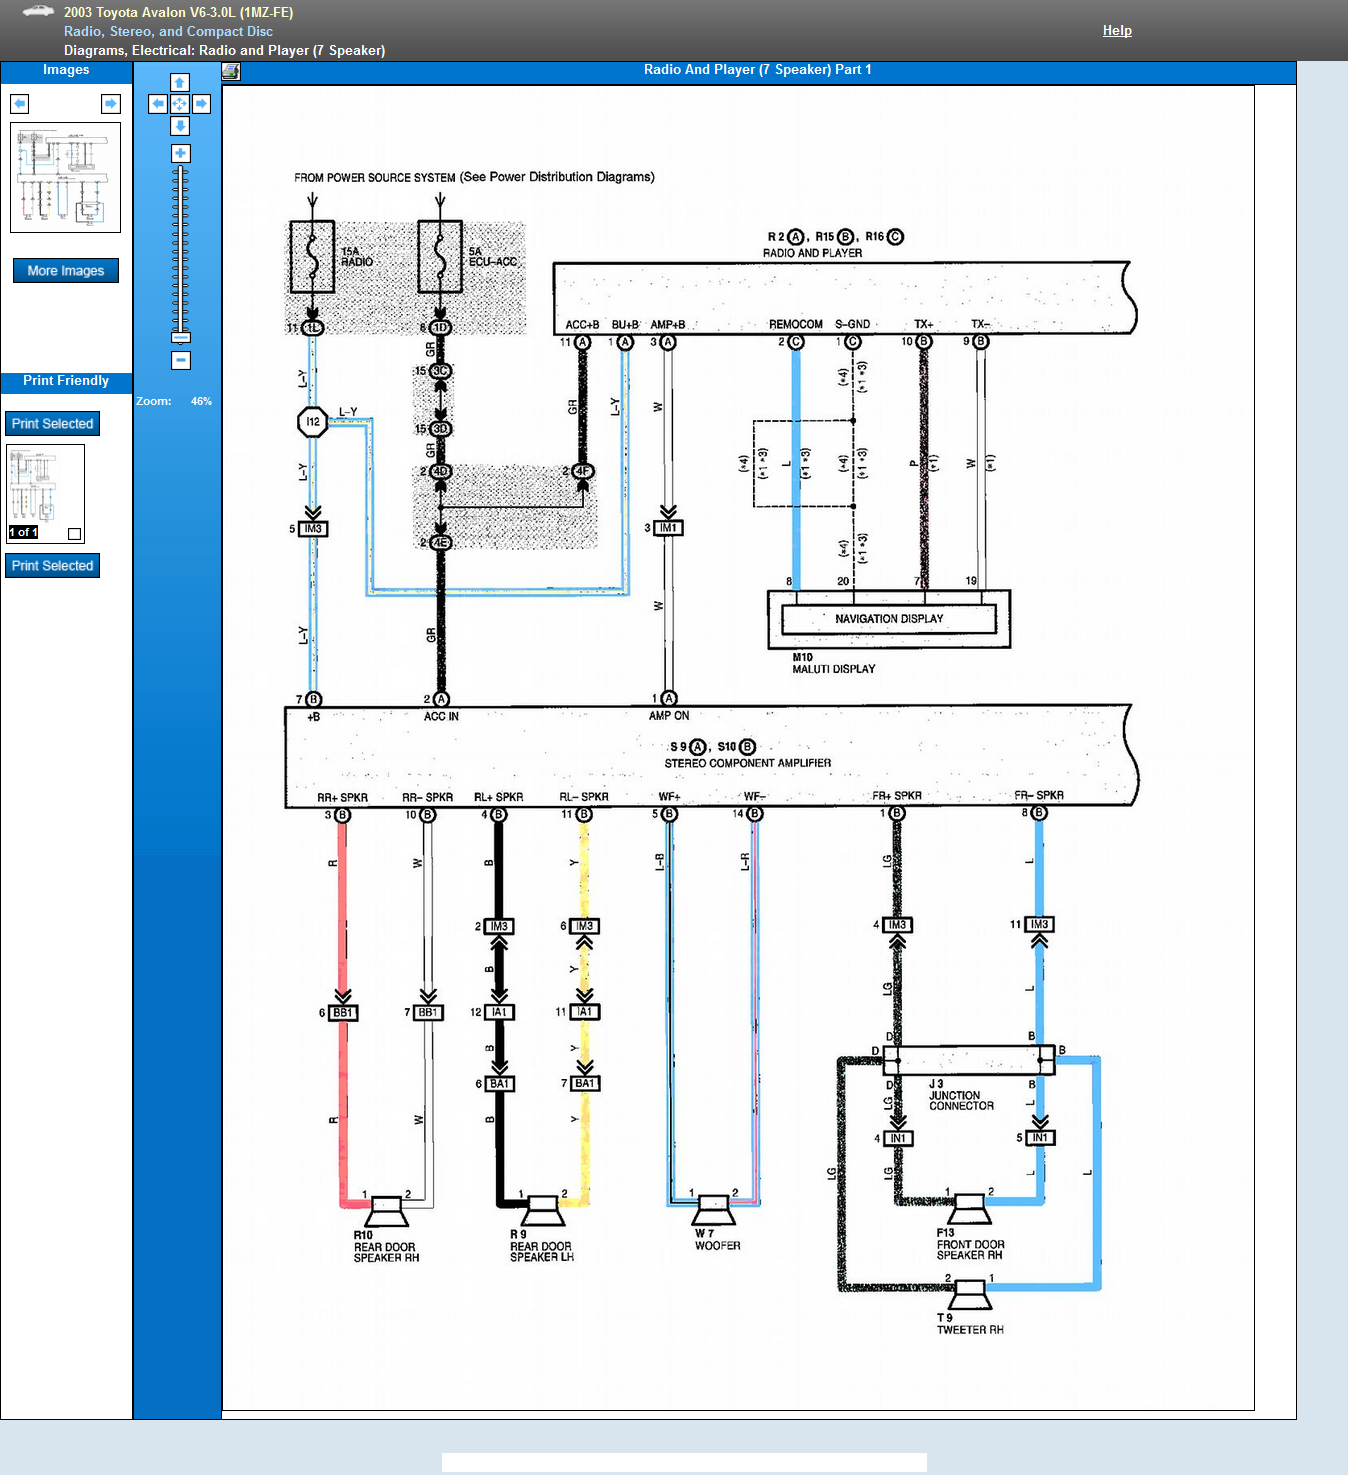 17 Good Sample Of Toyota Jbl Amplifier Wiring Diagram Design Ideas  With Images